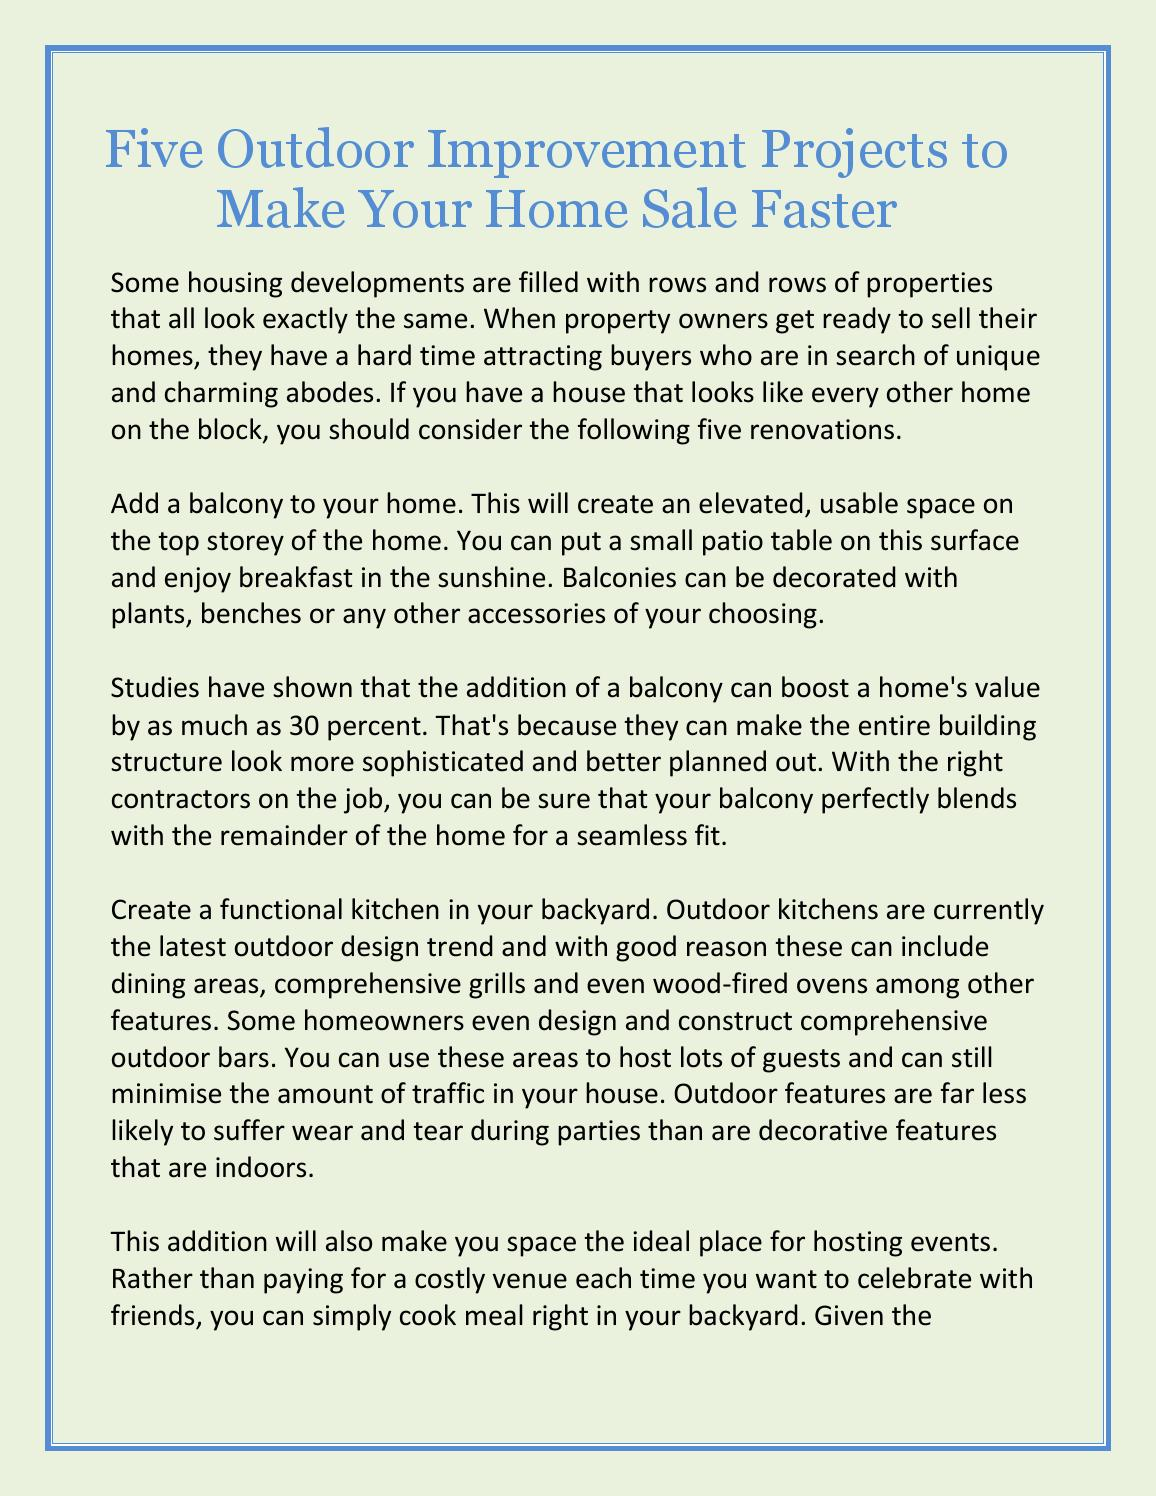 Five Outdoor Improvement Projects To Make Your Home Sale Faster By